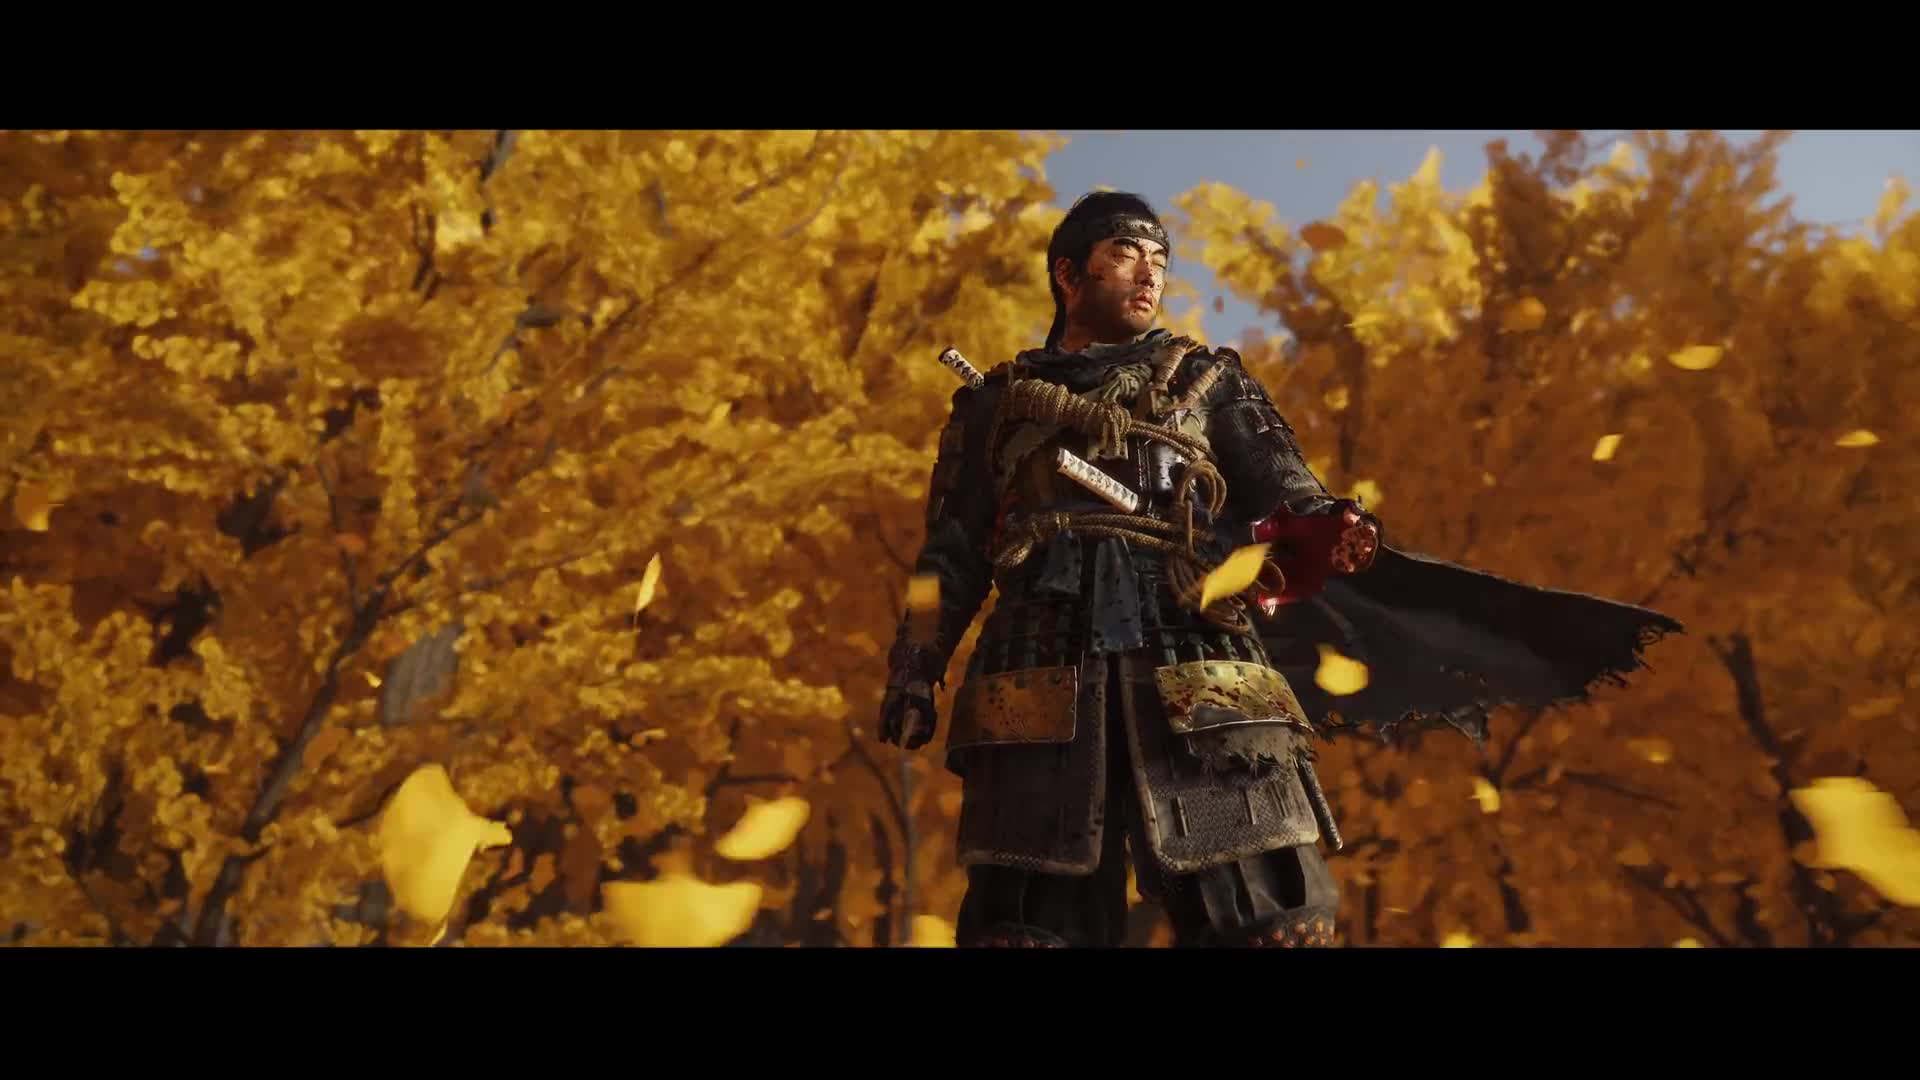 Trailer, Sony, PlayStation 4, Playstation, PS4, Sony PlayStation 4, Sony PS4, Game Awards, Ghost of Tsushima, Sucker Punch, Game Awards 2019